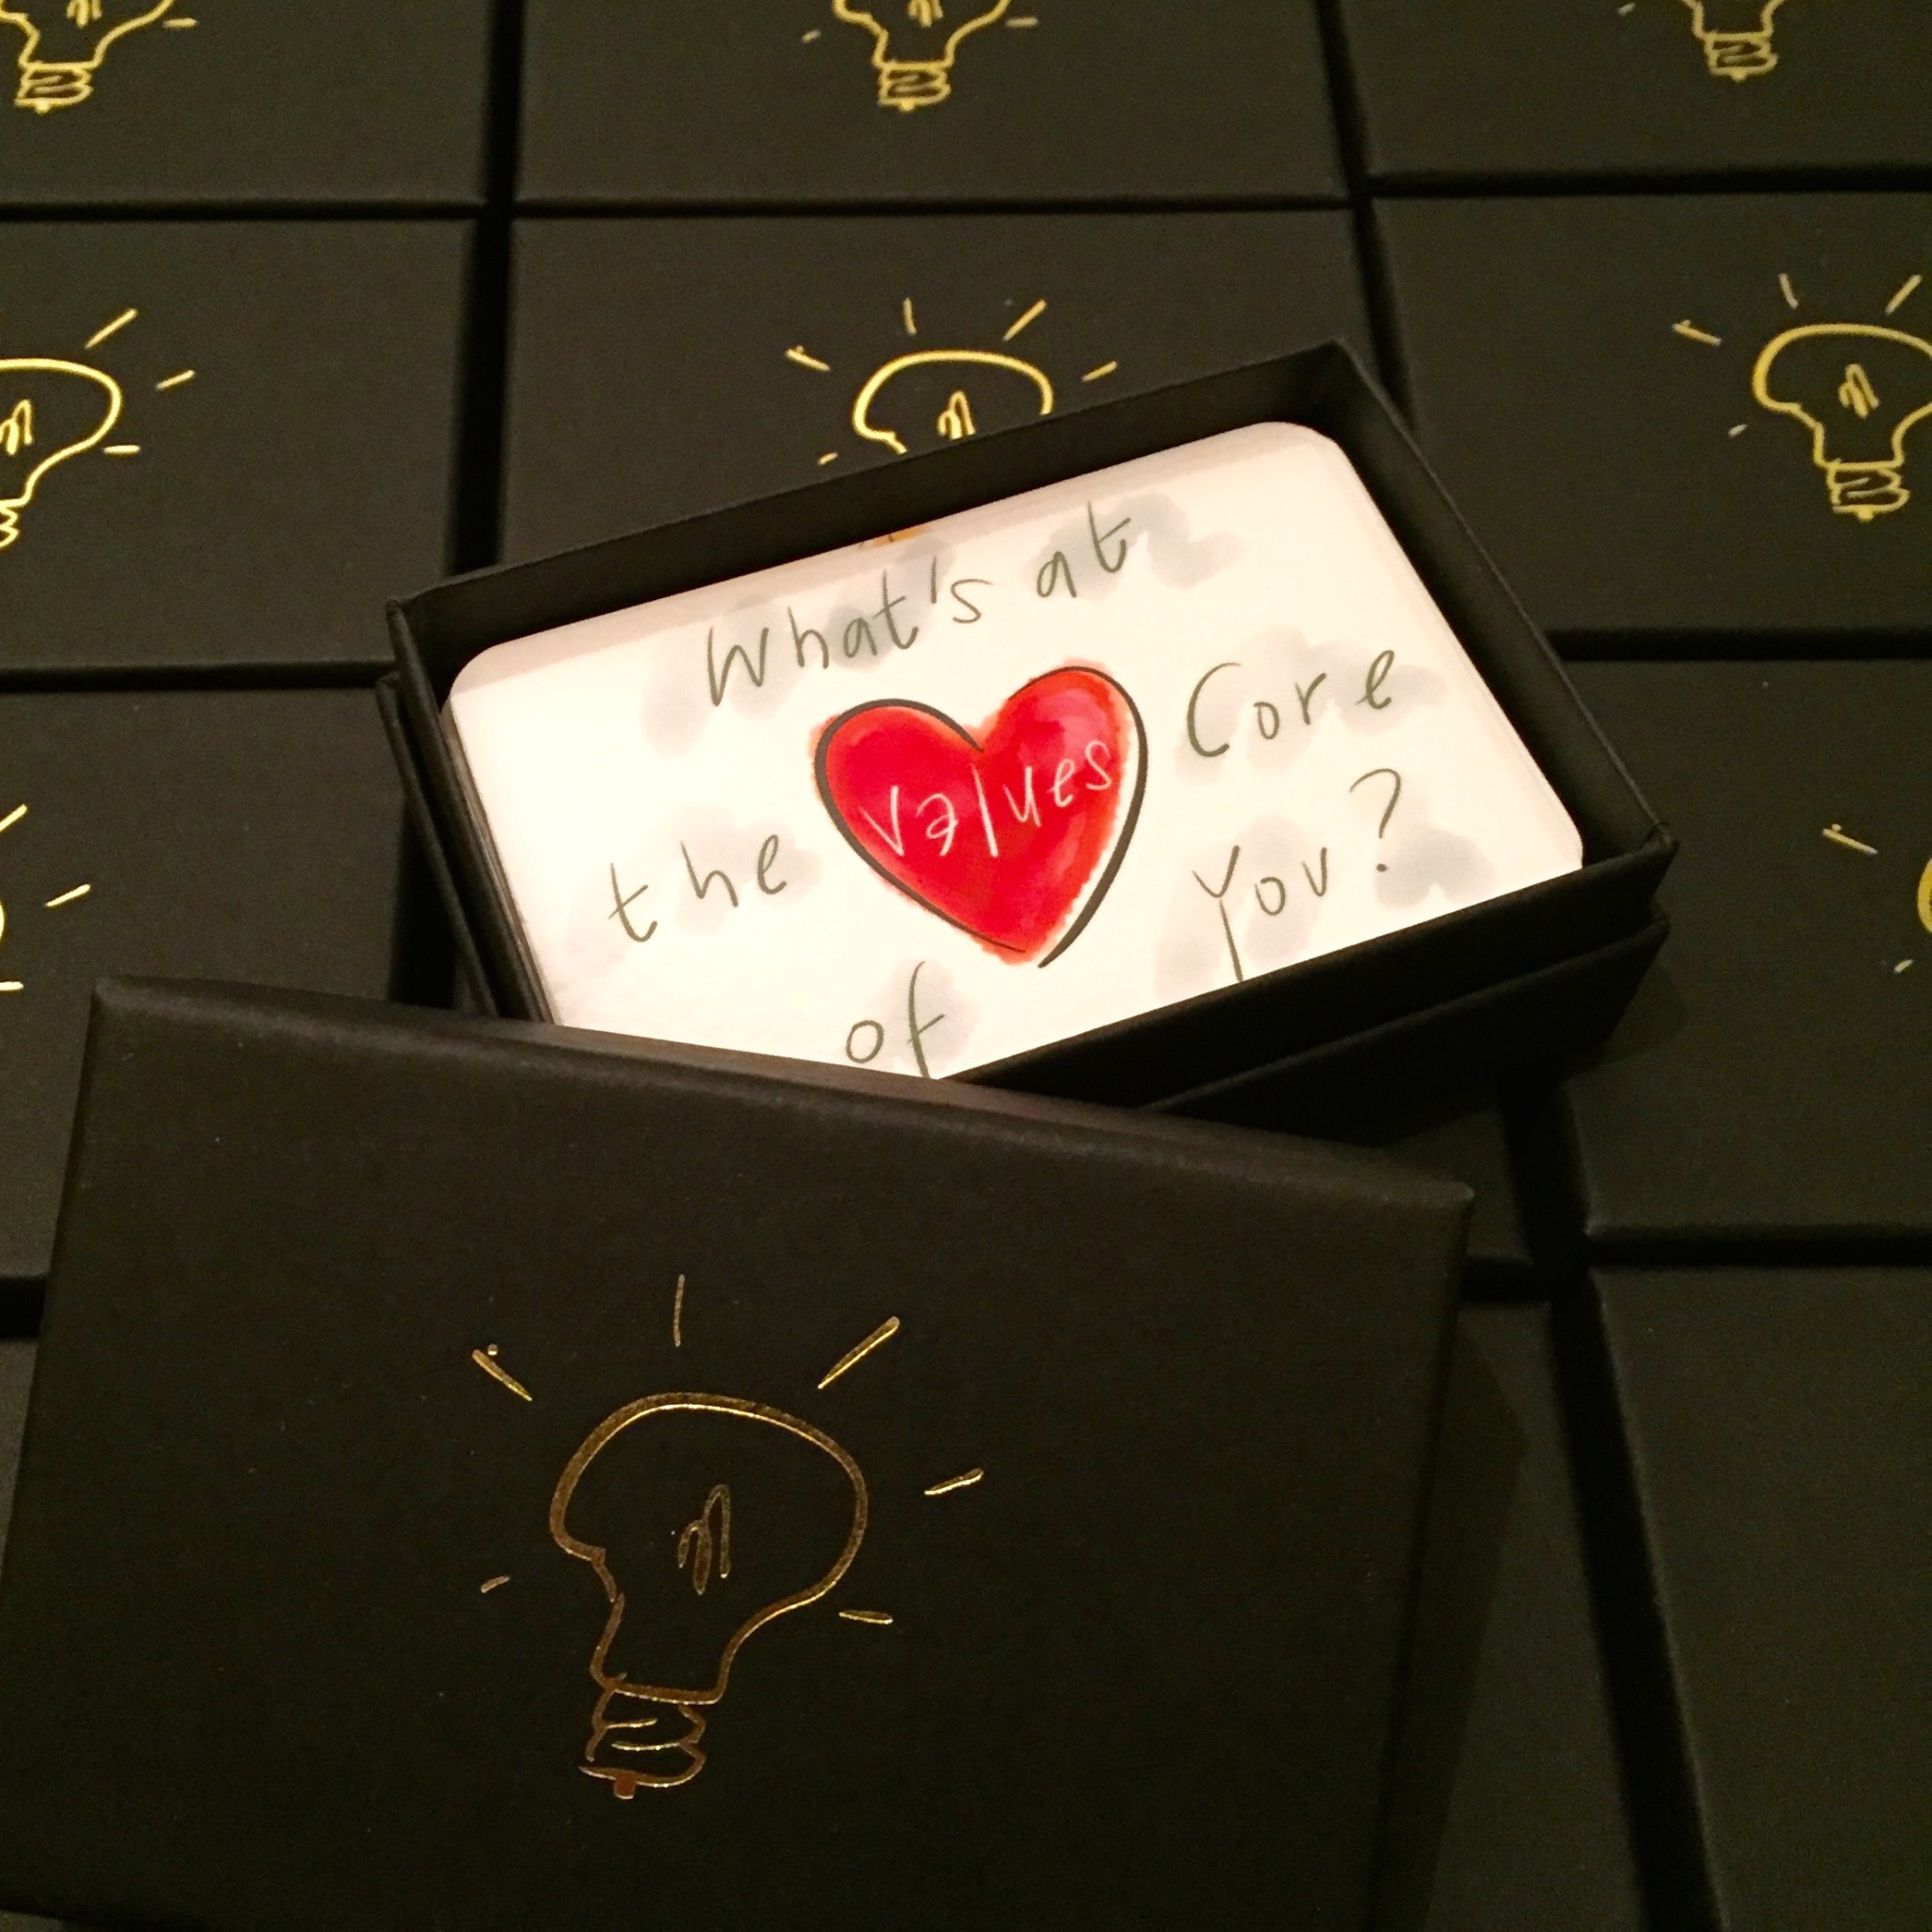 The Art of the Possible: Cards for coaching, networking & ideas generation.